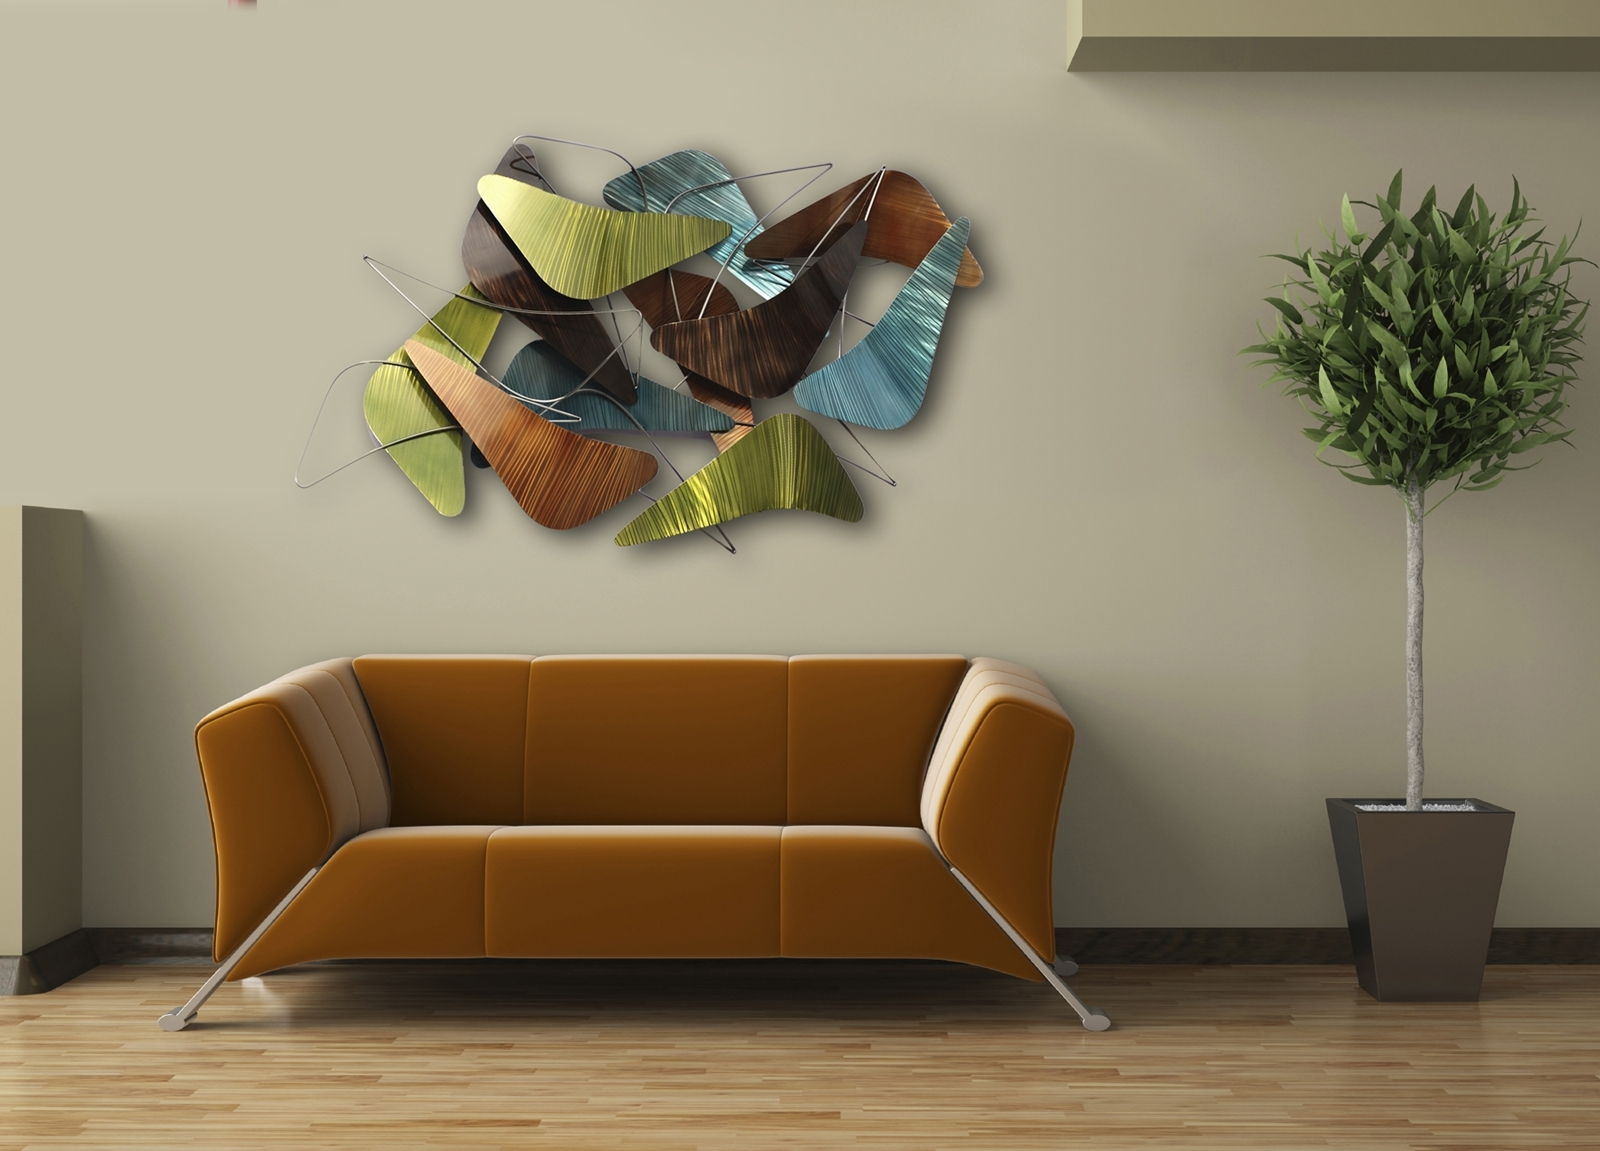 Contemporary Wall Art Throughout Preferred Unique Modern Wall Design For Living Room — Joanne Russo Homesjoanne (View 3 of 15)